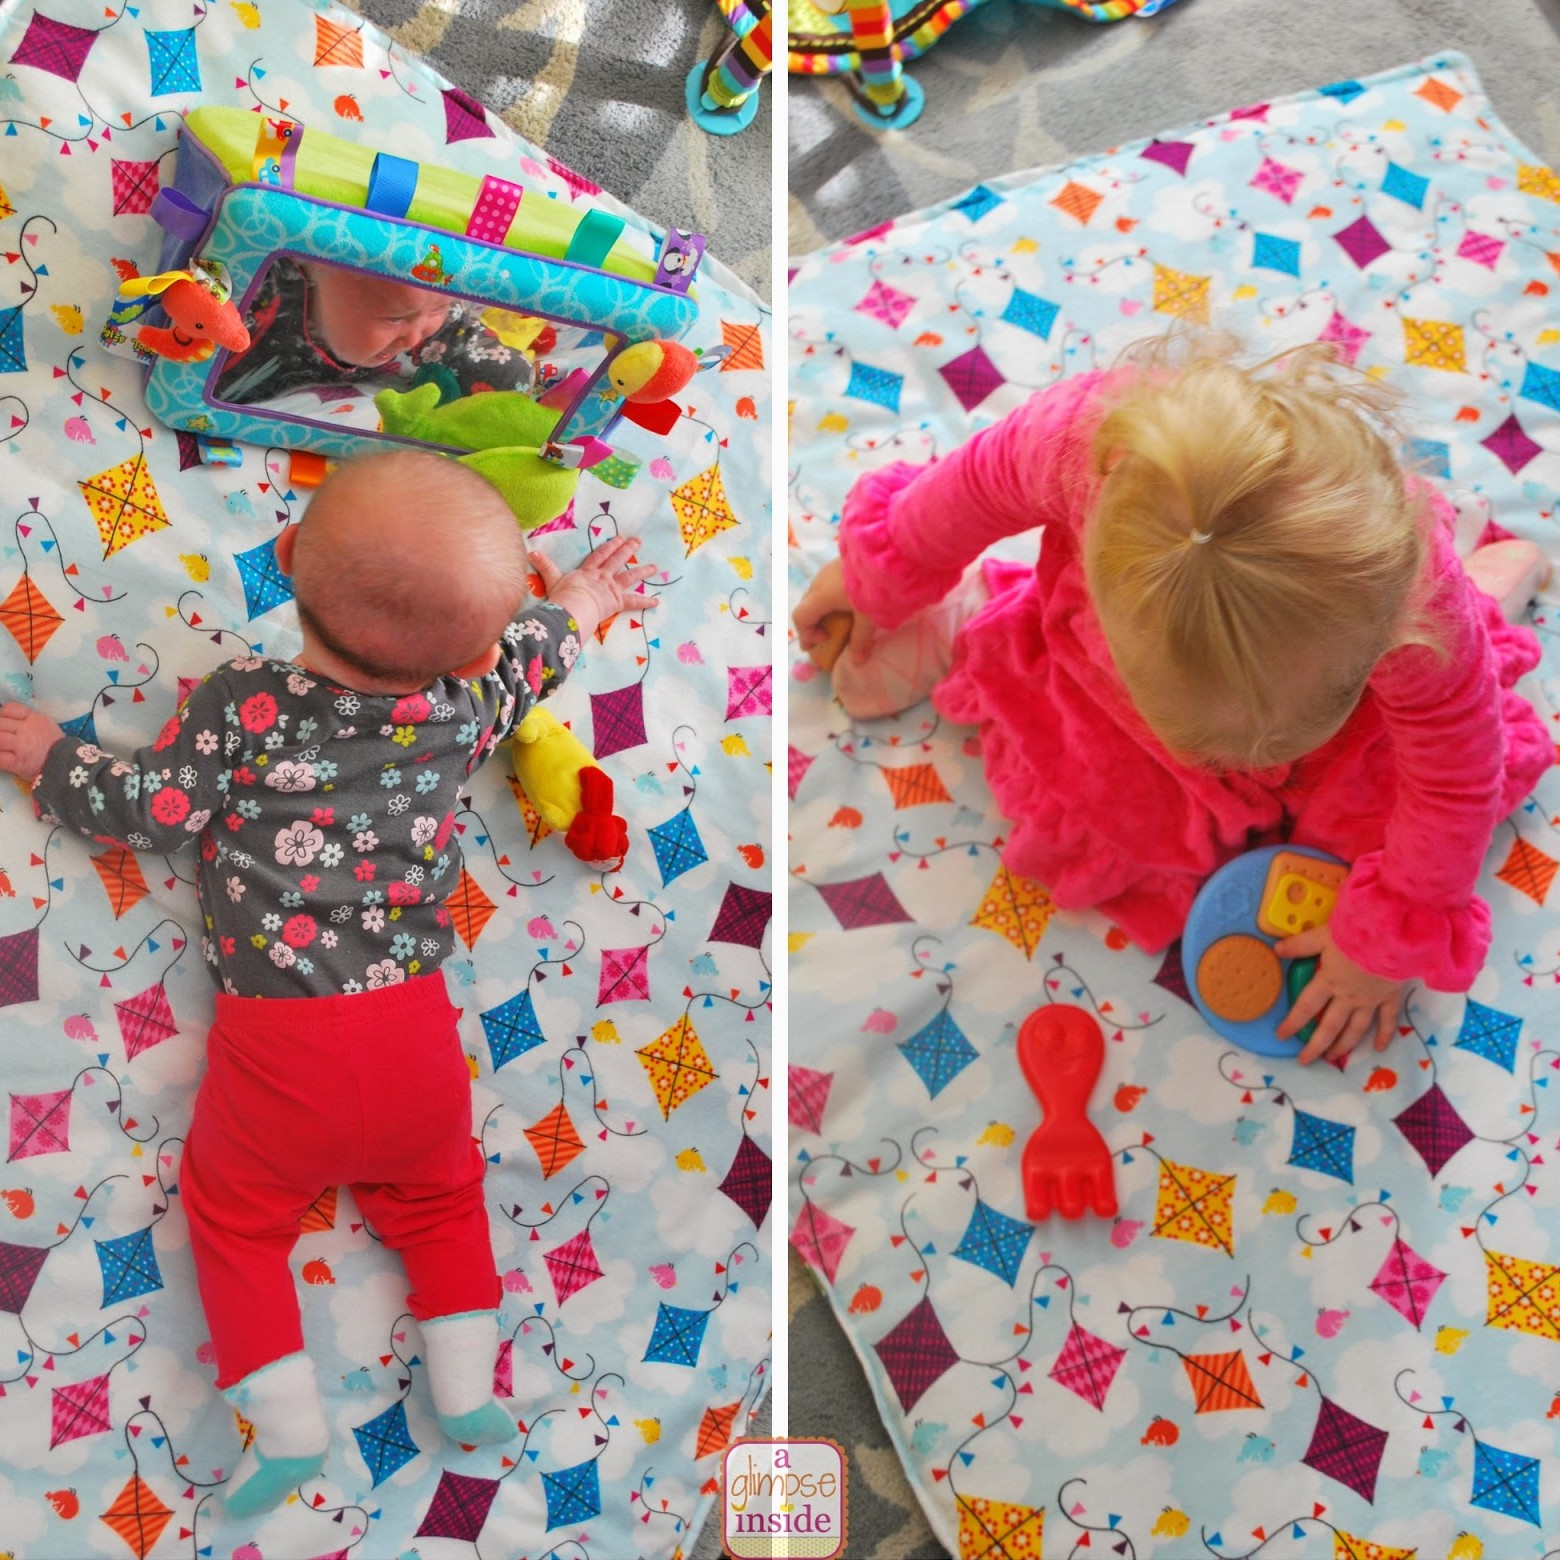 blanket-play mat- girls playing